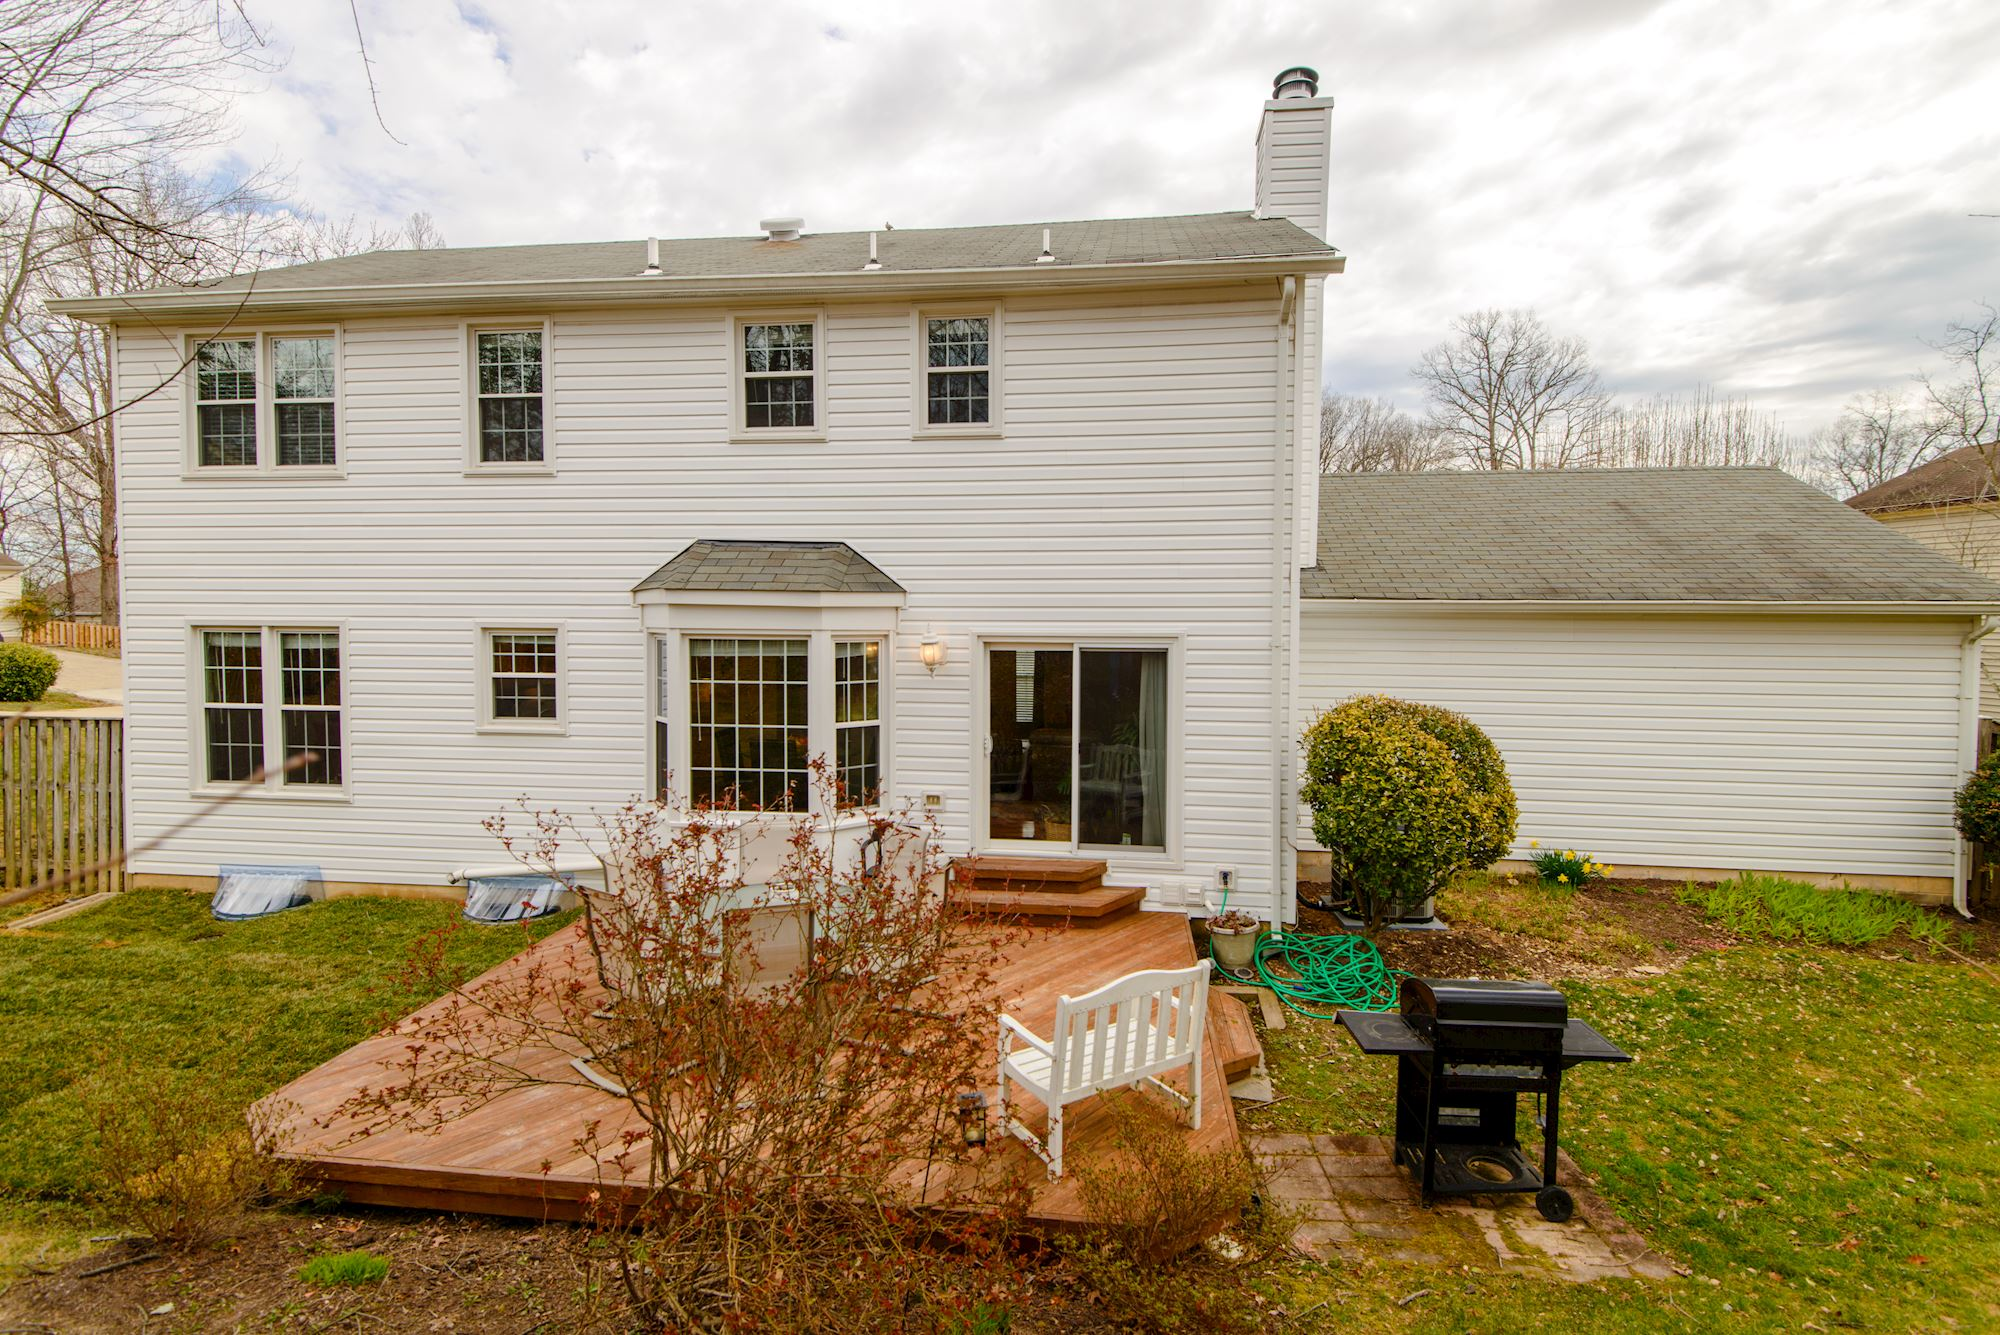 NEW LISTING: Charming 4 BD Colonial in Springfield,VA